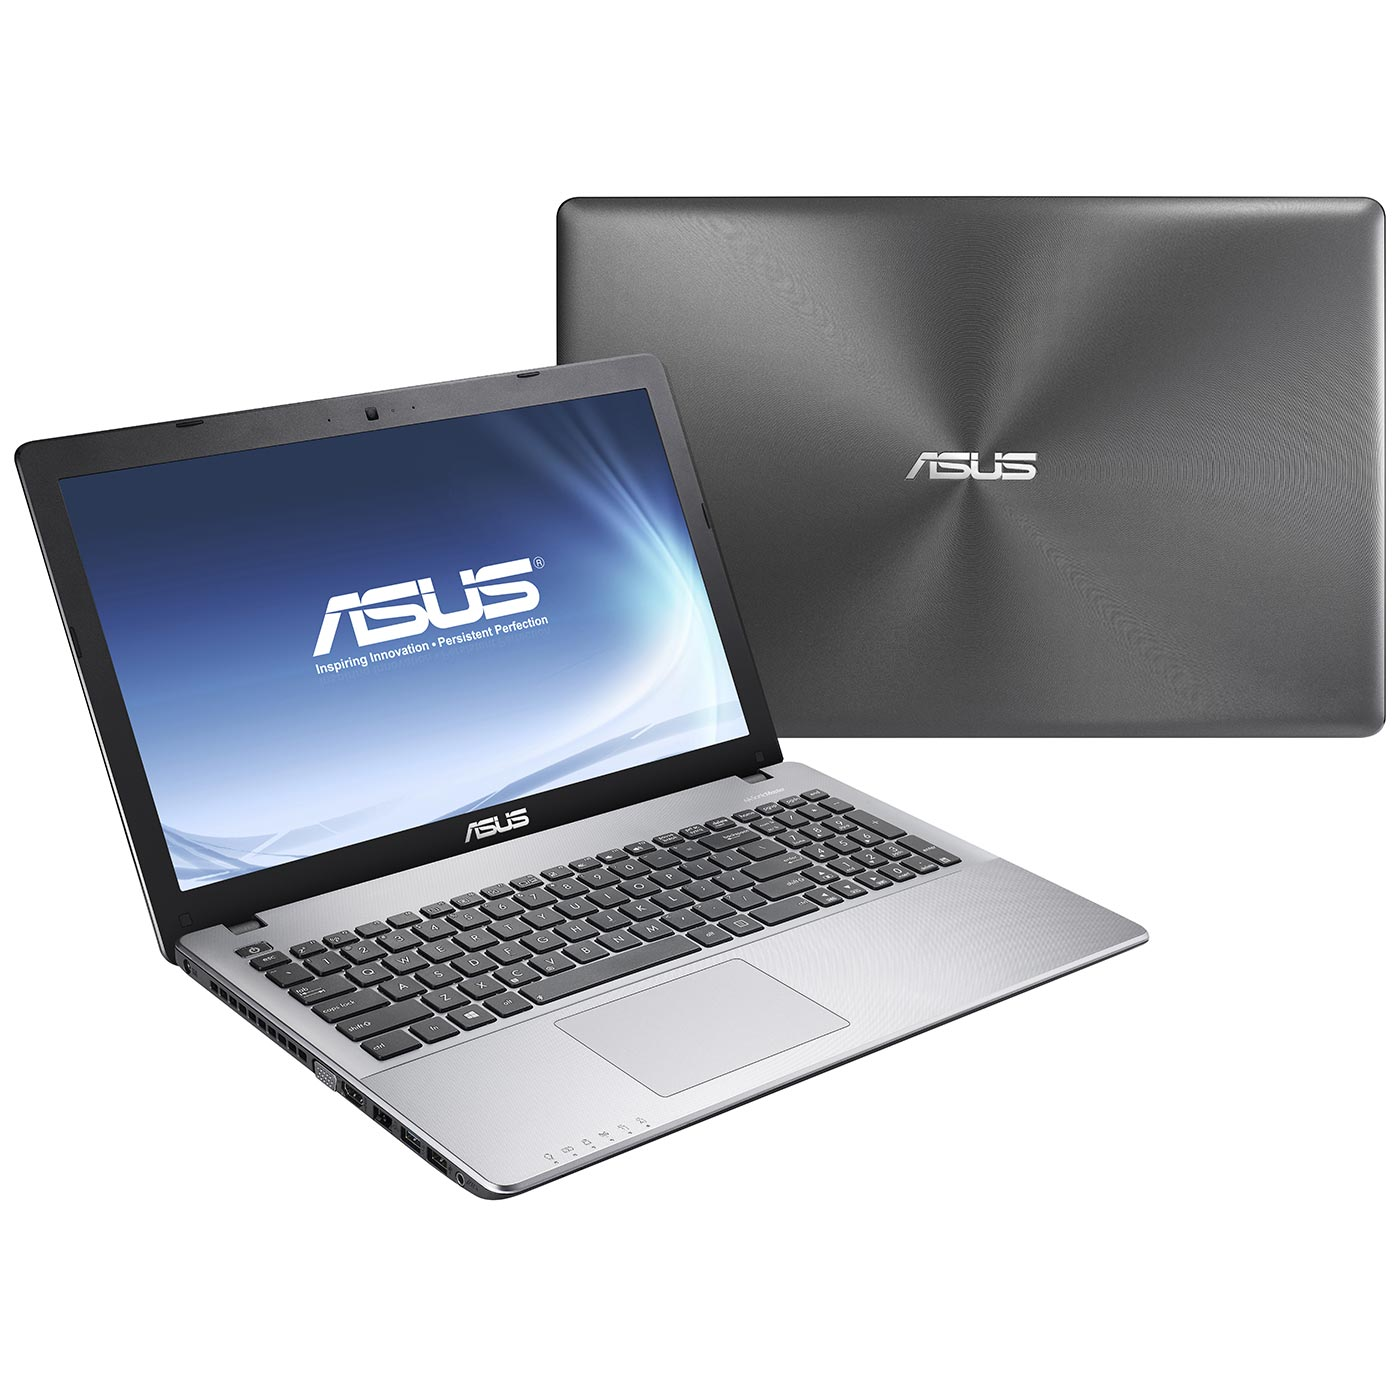 "PC portable ASUS R510JK-DM209H Intel Core i5-4200H 6 Go 750 Go 15.6"" LED NVIDIA GeForce GTX 850M Graveur DVD Wi-Fi N/Bluetooth Webcam Windows 8.1 64 bits (garantie constructeur 1 an)"